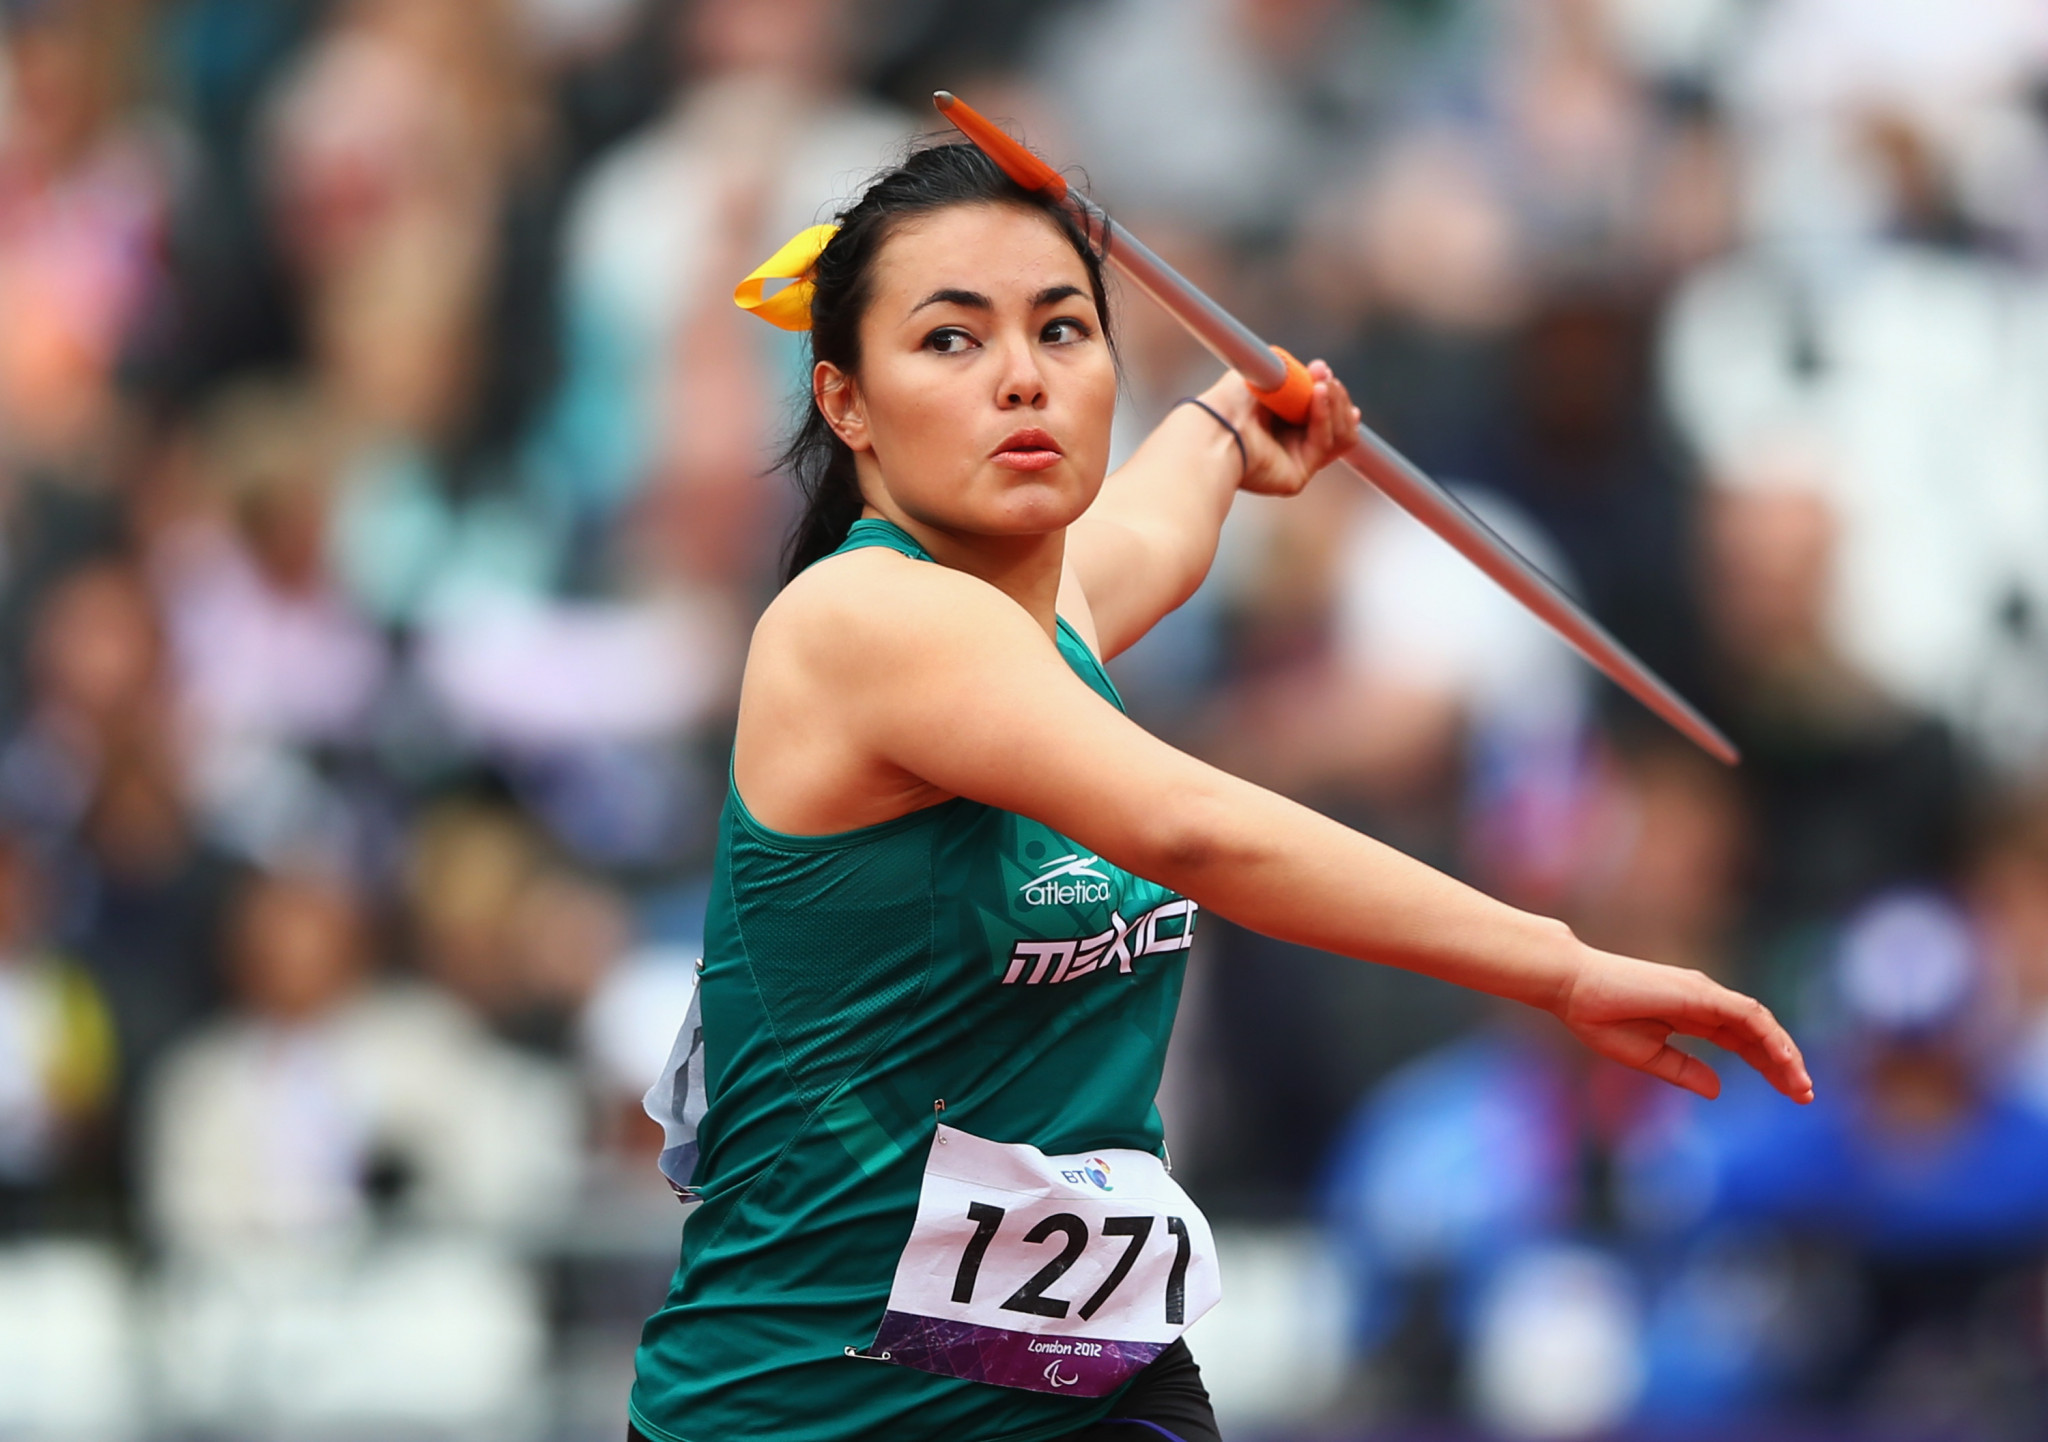 Mexican shot putter named Americas Paralympic Committee athlete of the month for February